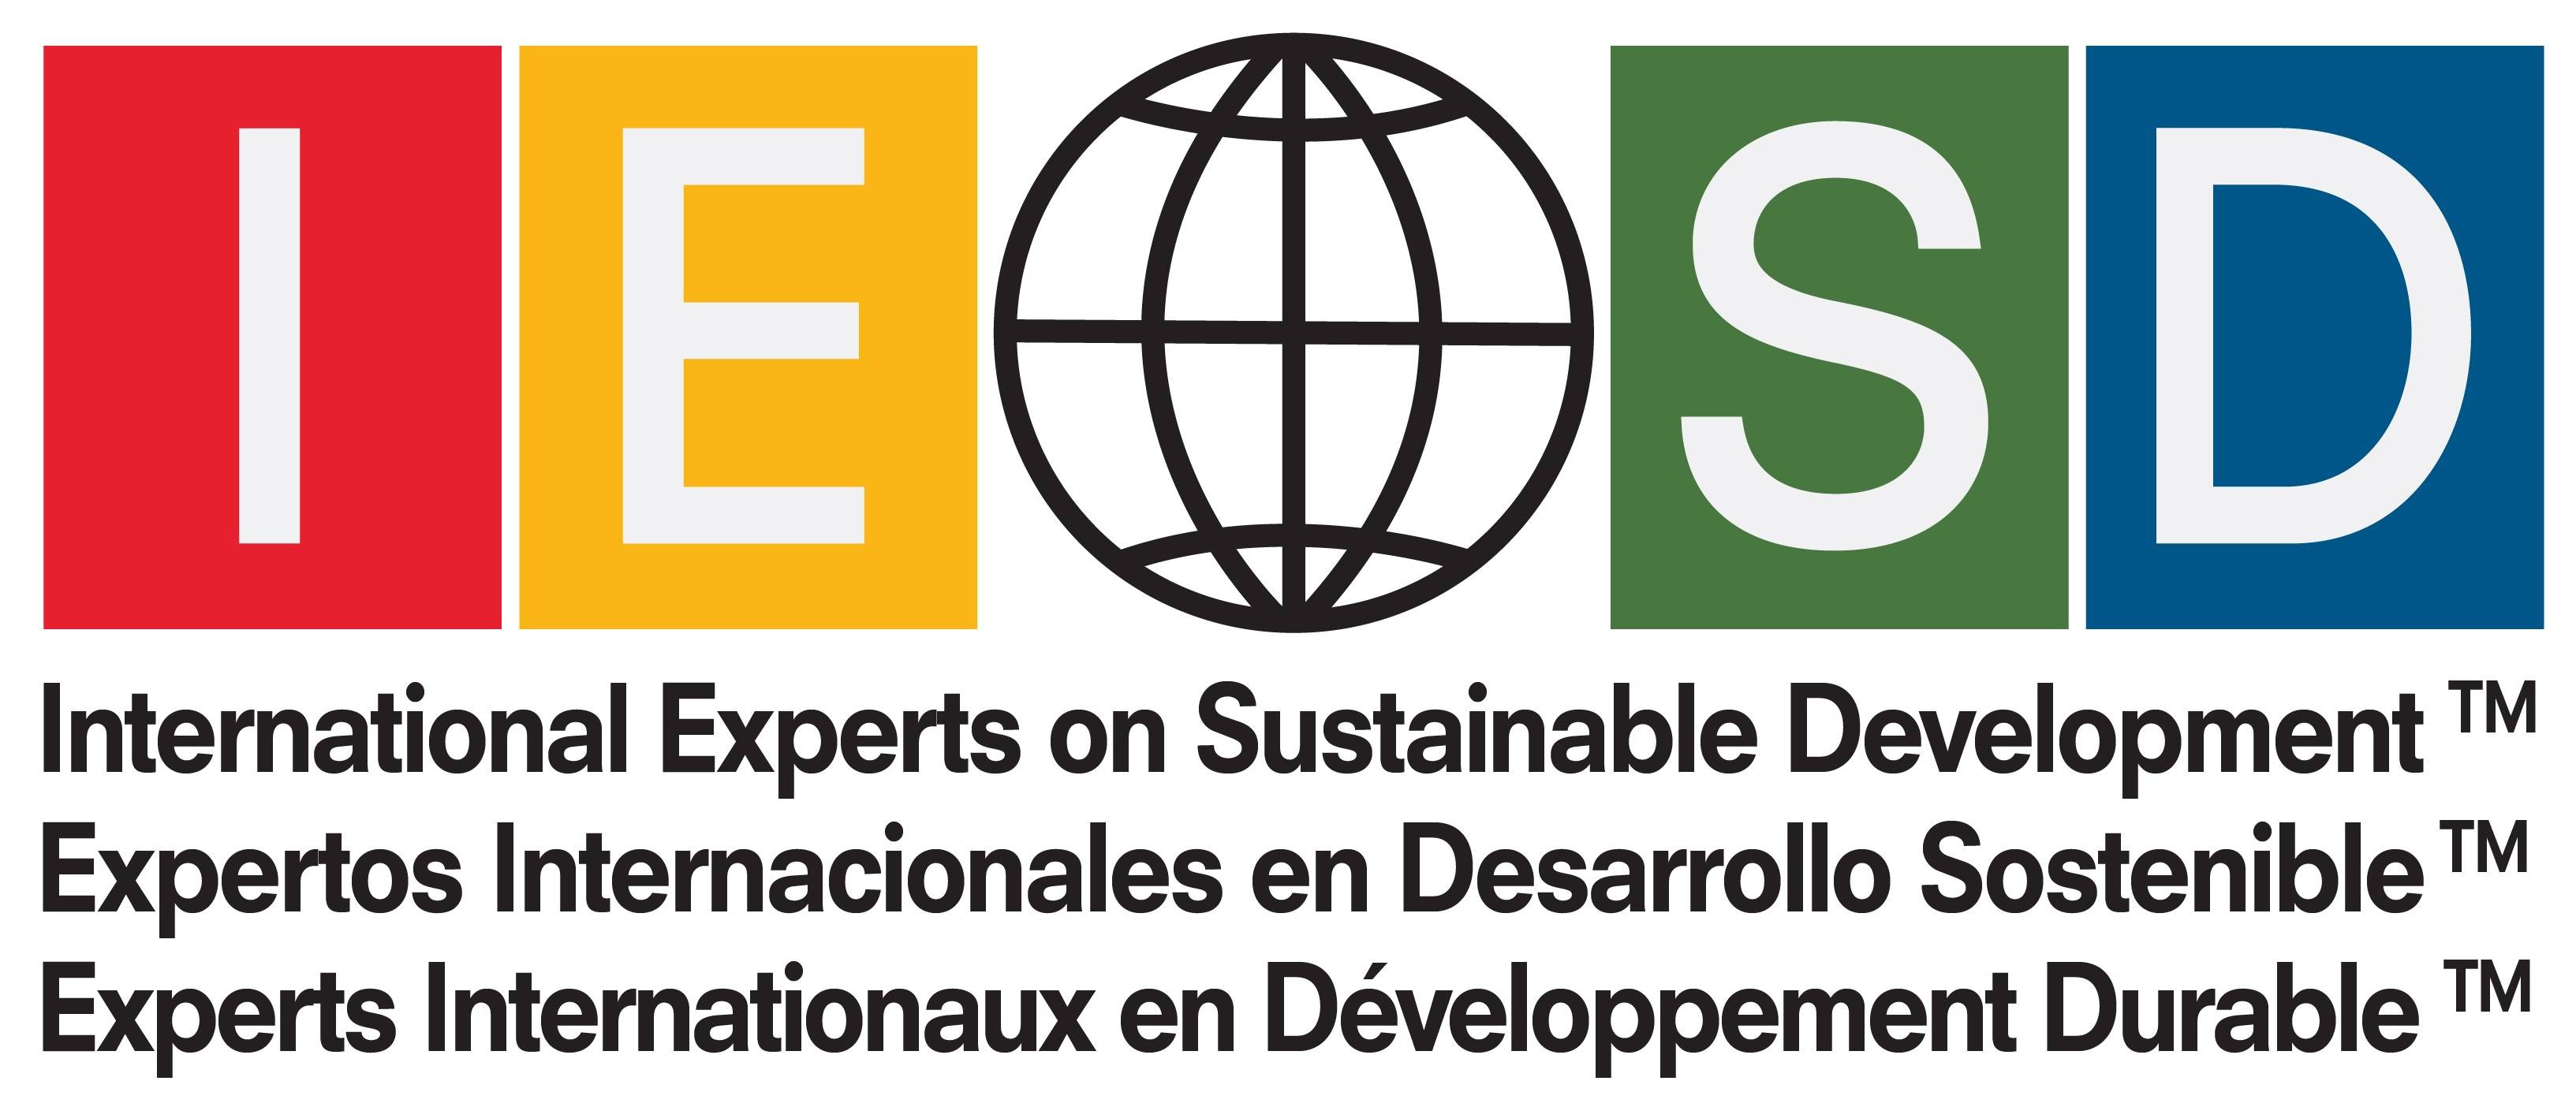 Logo of International Experts on Sustainable Development (IESD) (formerly Transcarbon International)